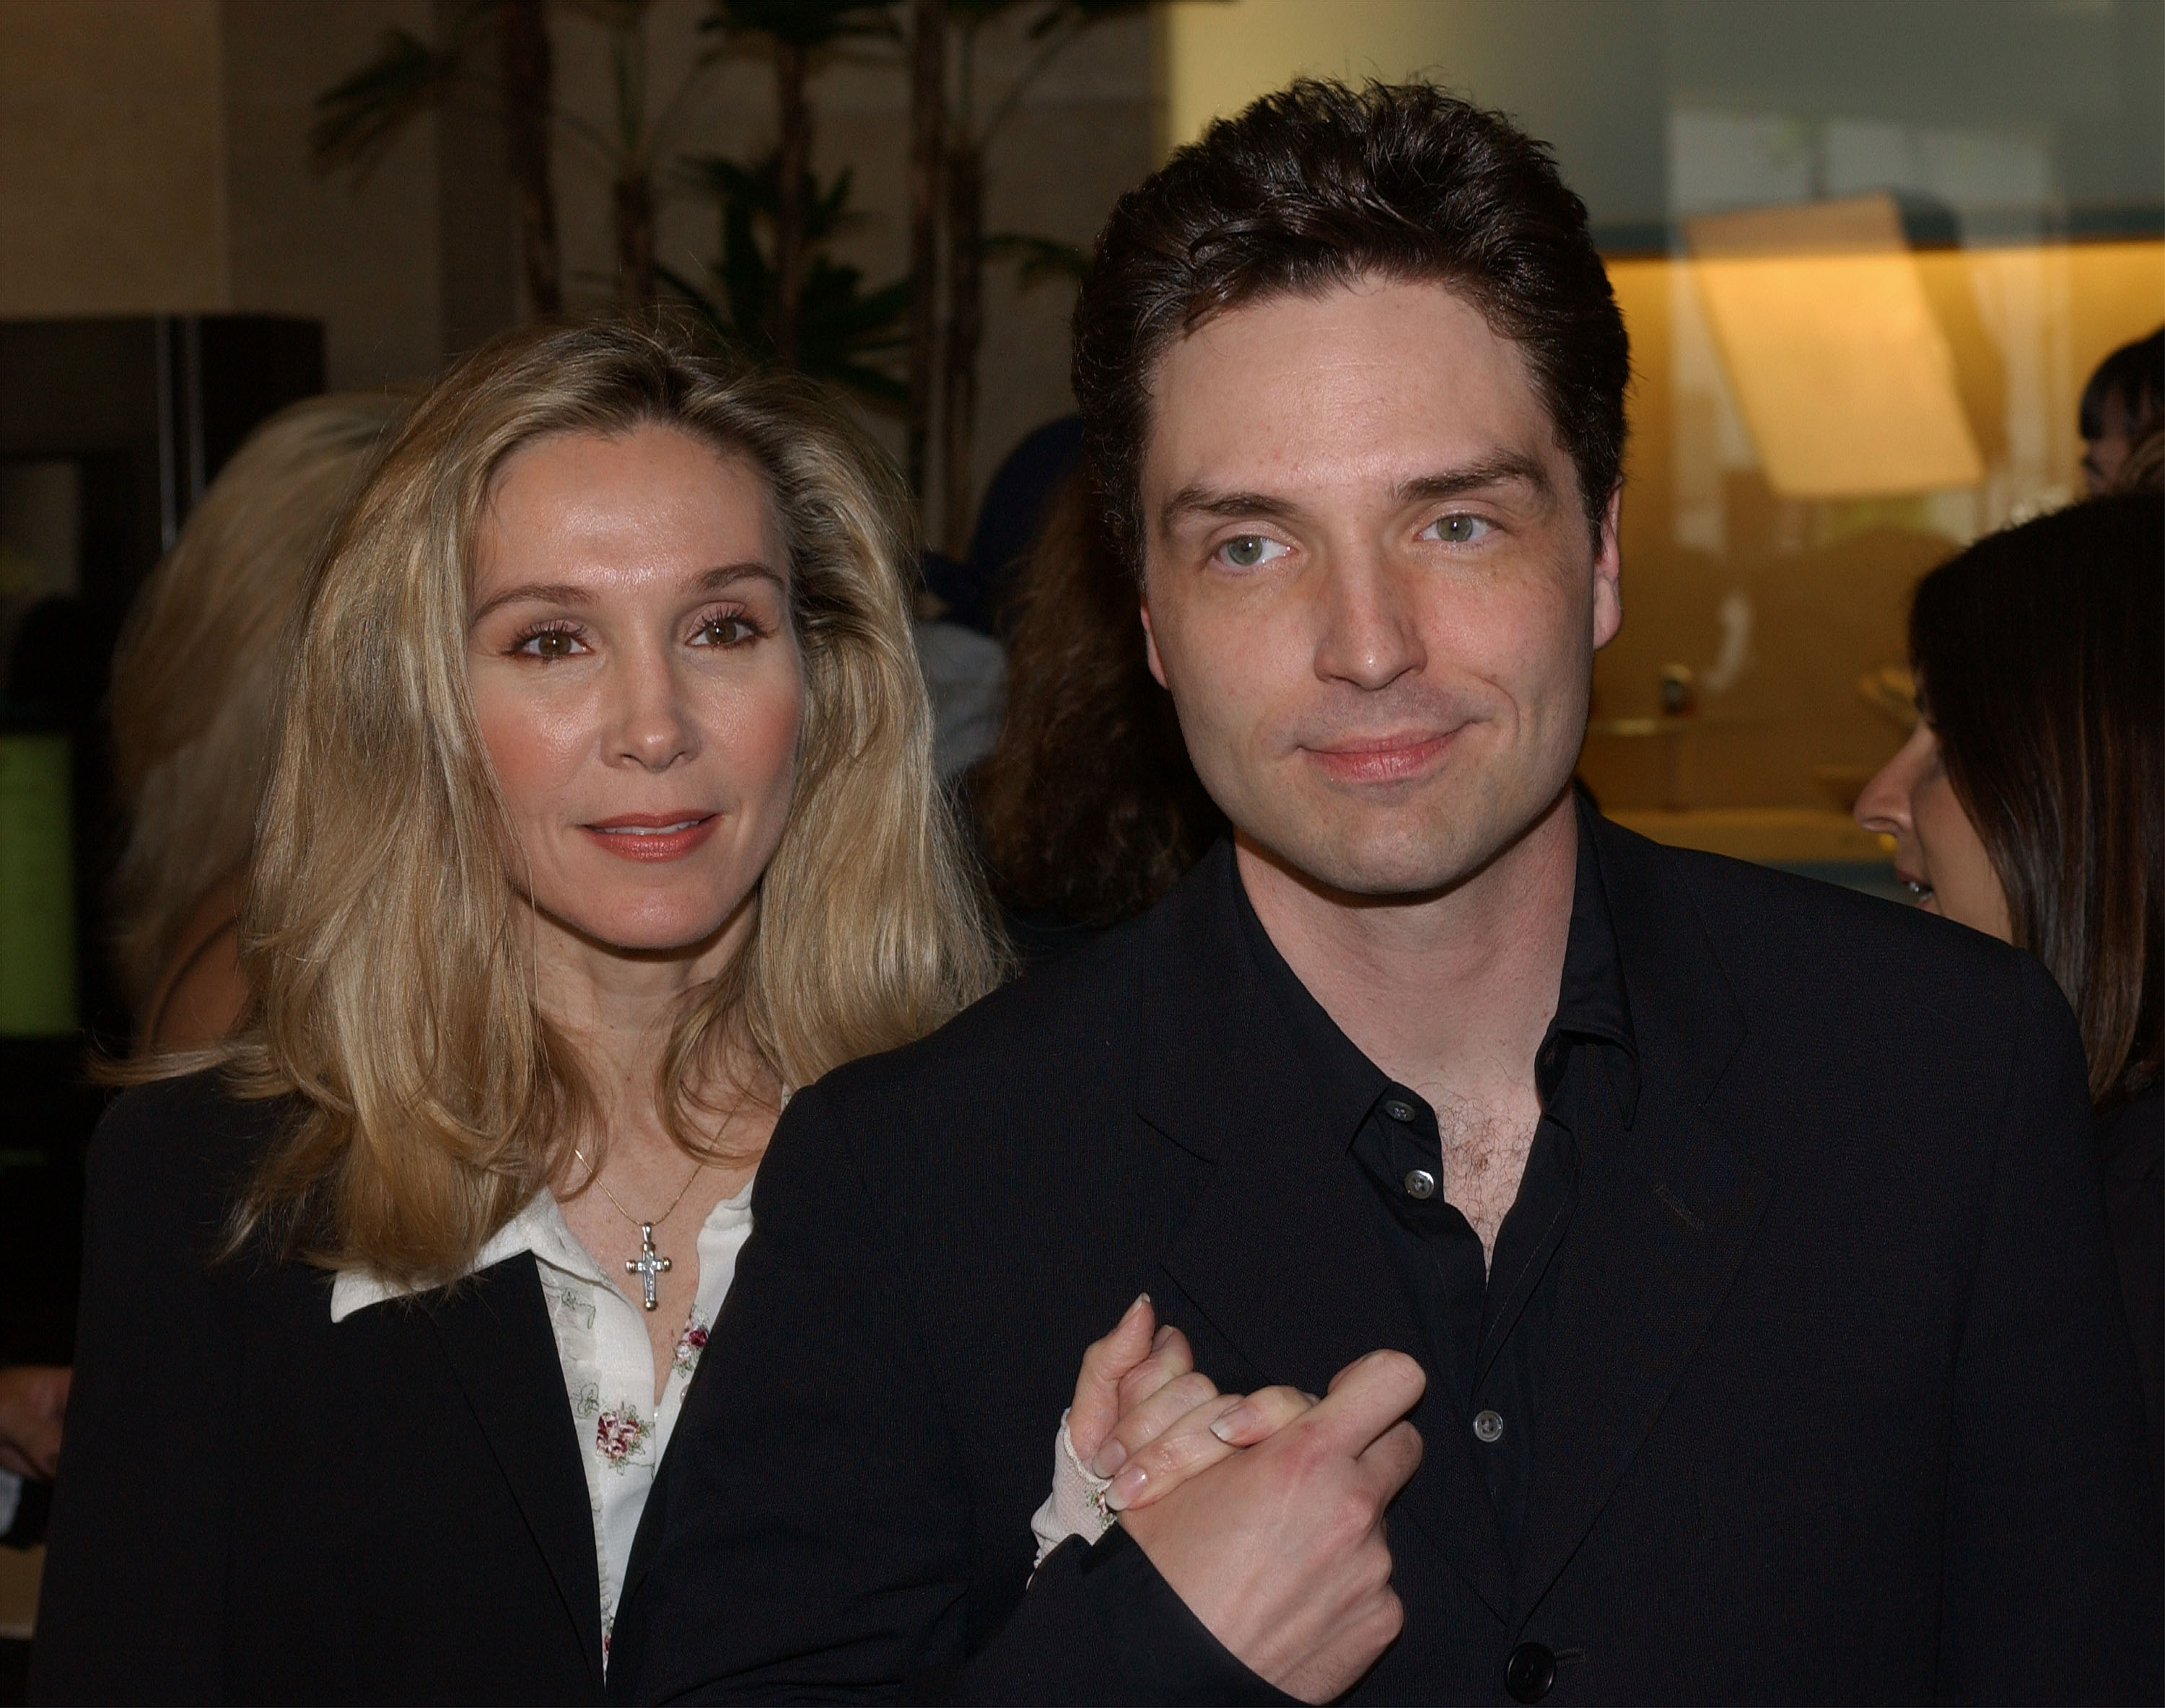 Richard Marx and his wife Cynthia Rhodes attend the 19th Annual ASCAP Pop Music Awards May 20, 2002 | Photo: GettyImages